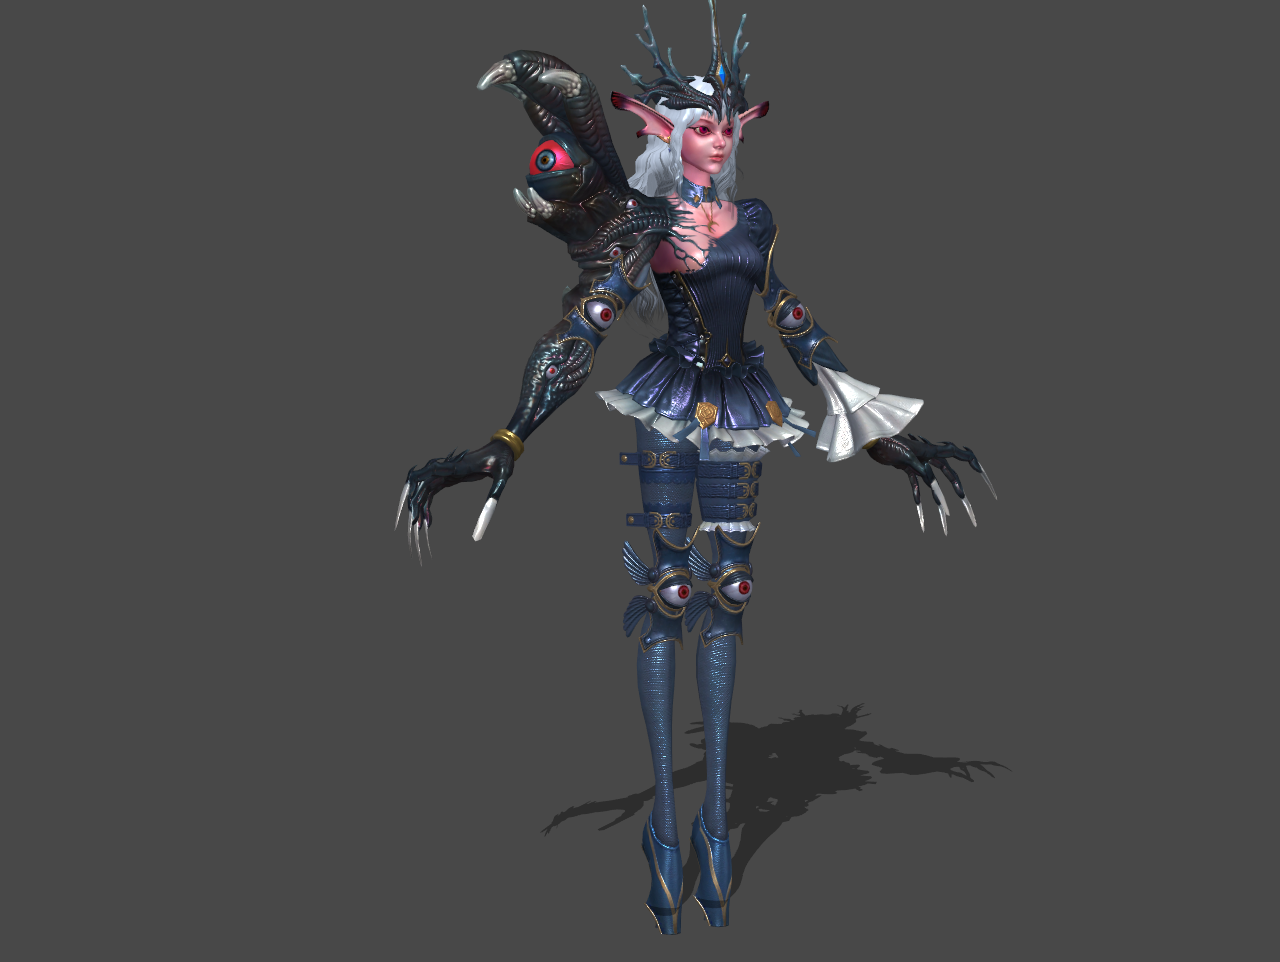 Asker online boss carryagnes by oo fil oo on deviantart Online 3d modeling